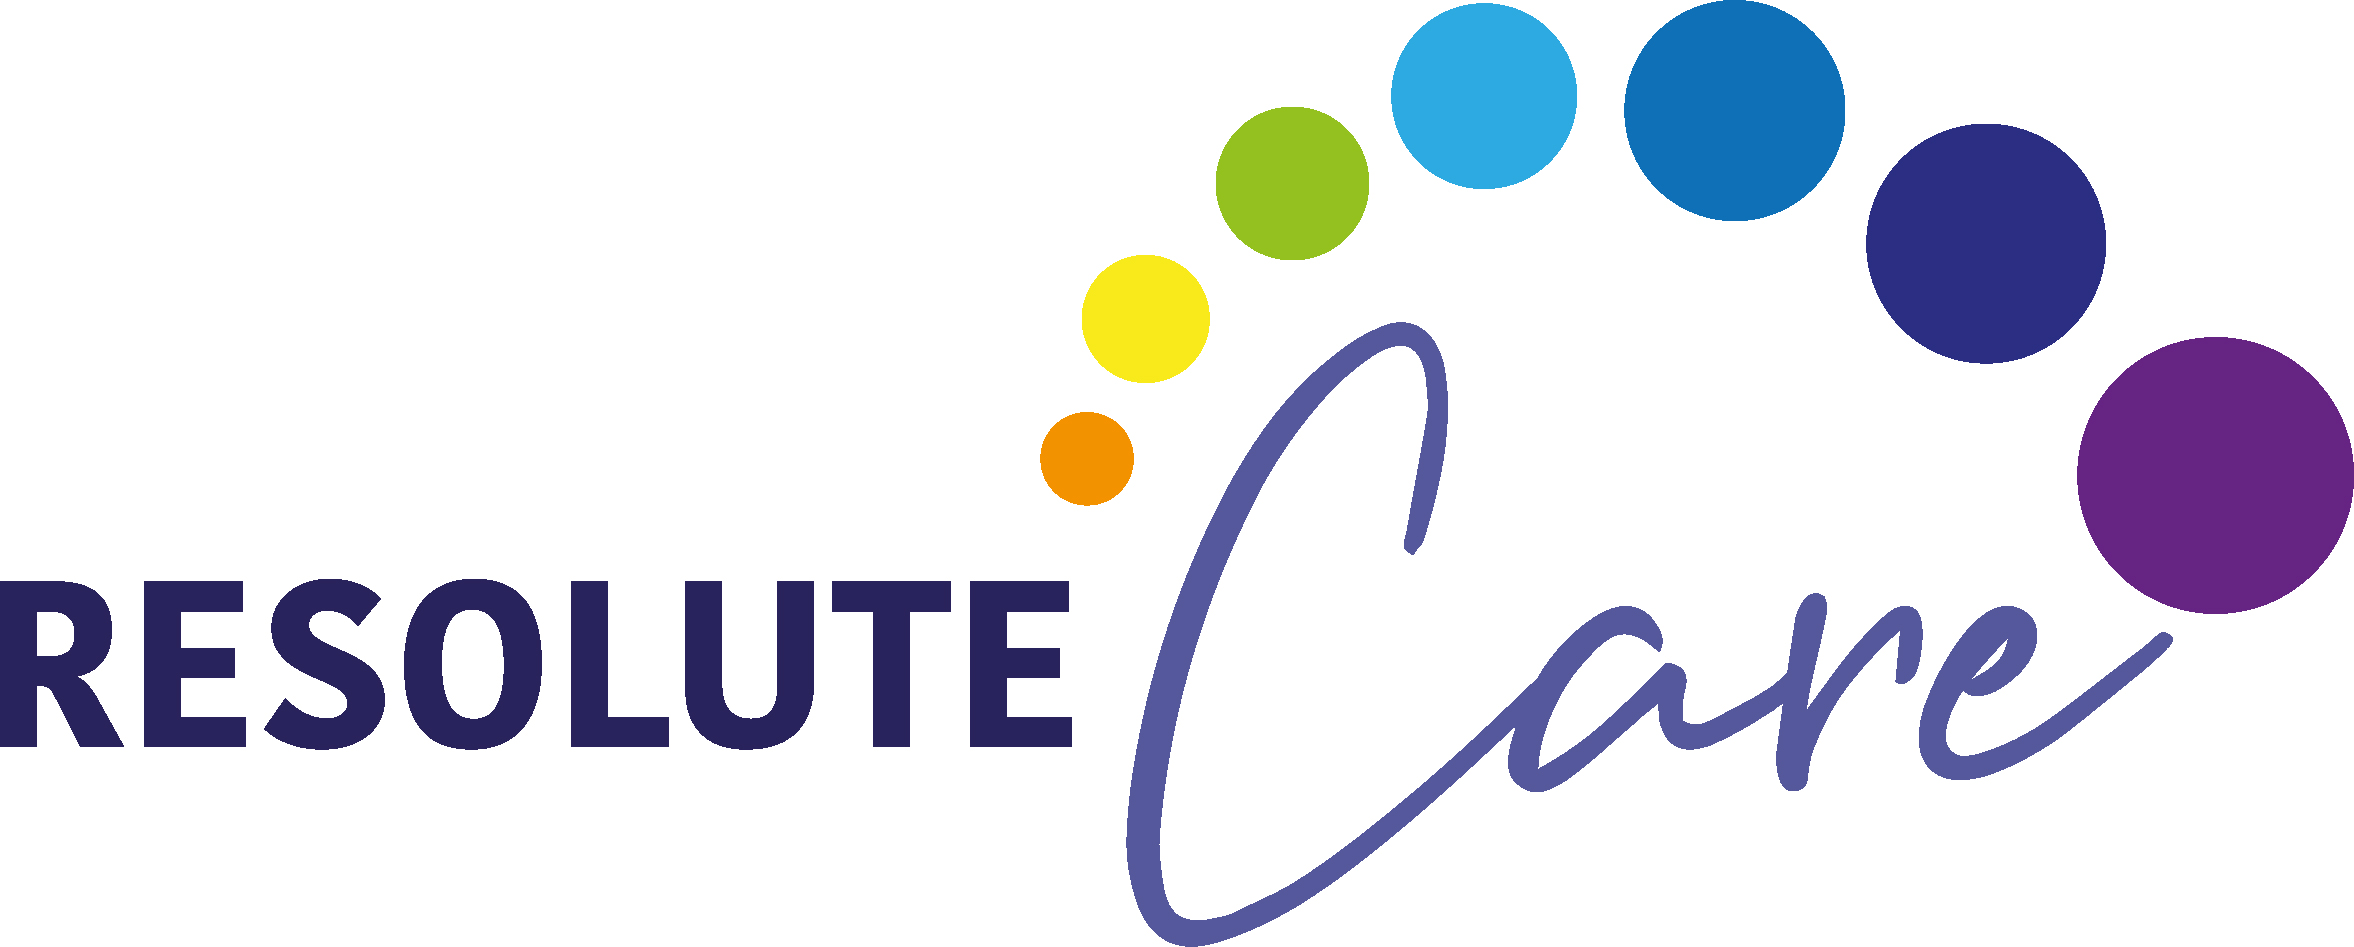 Resolute Care